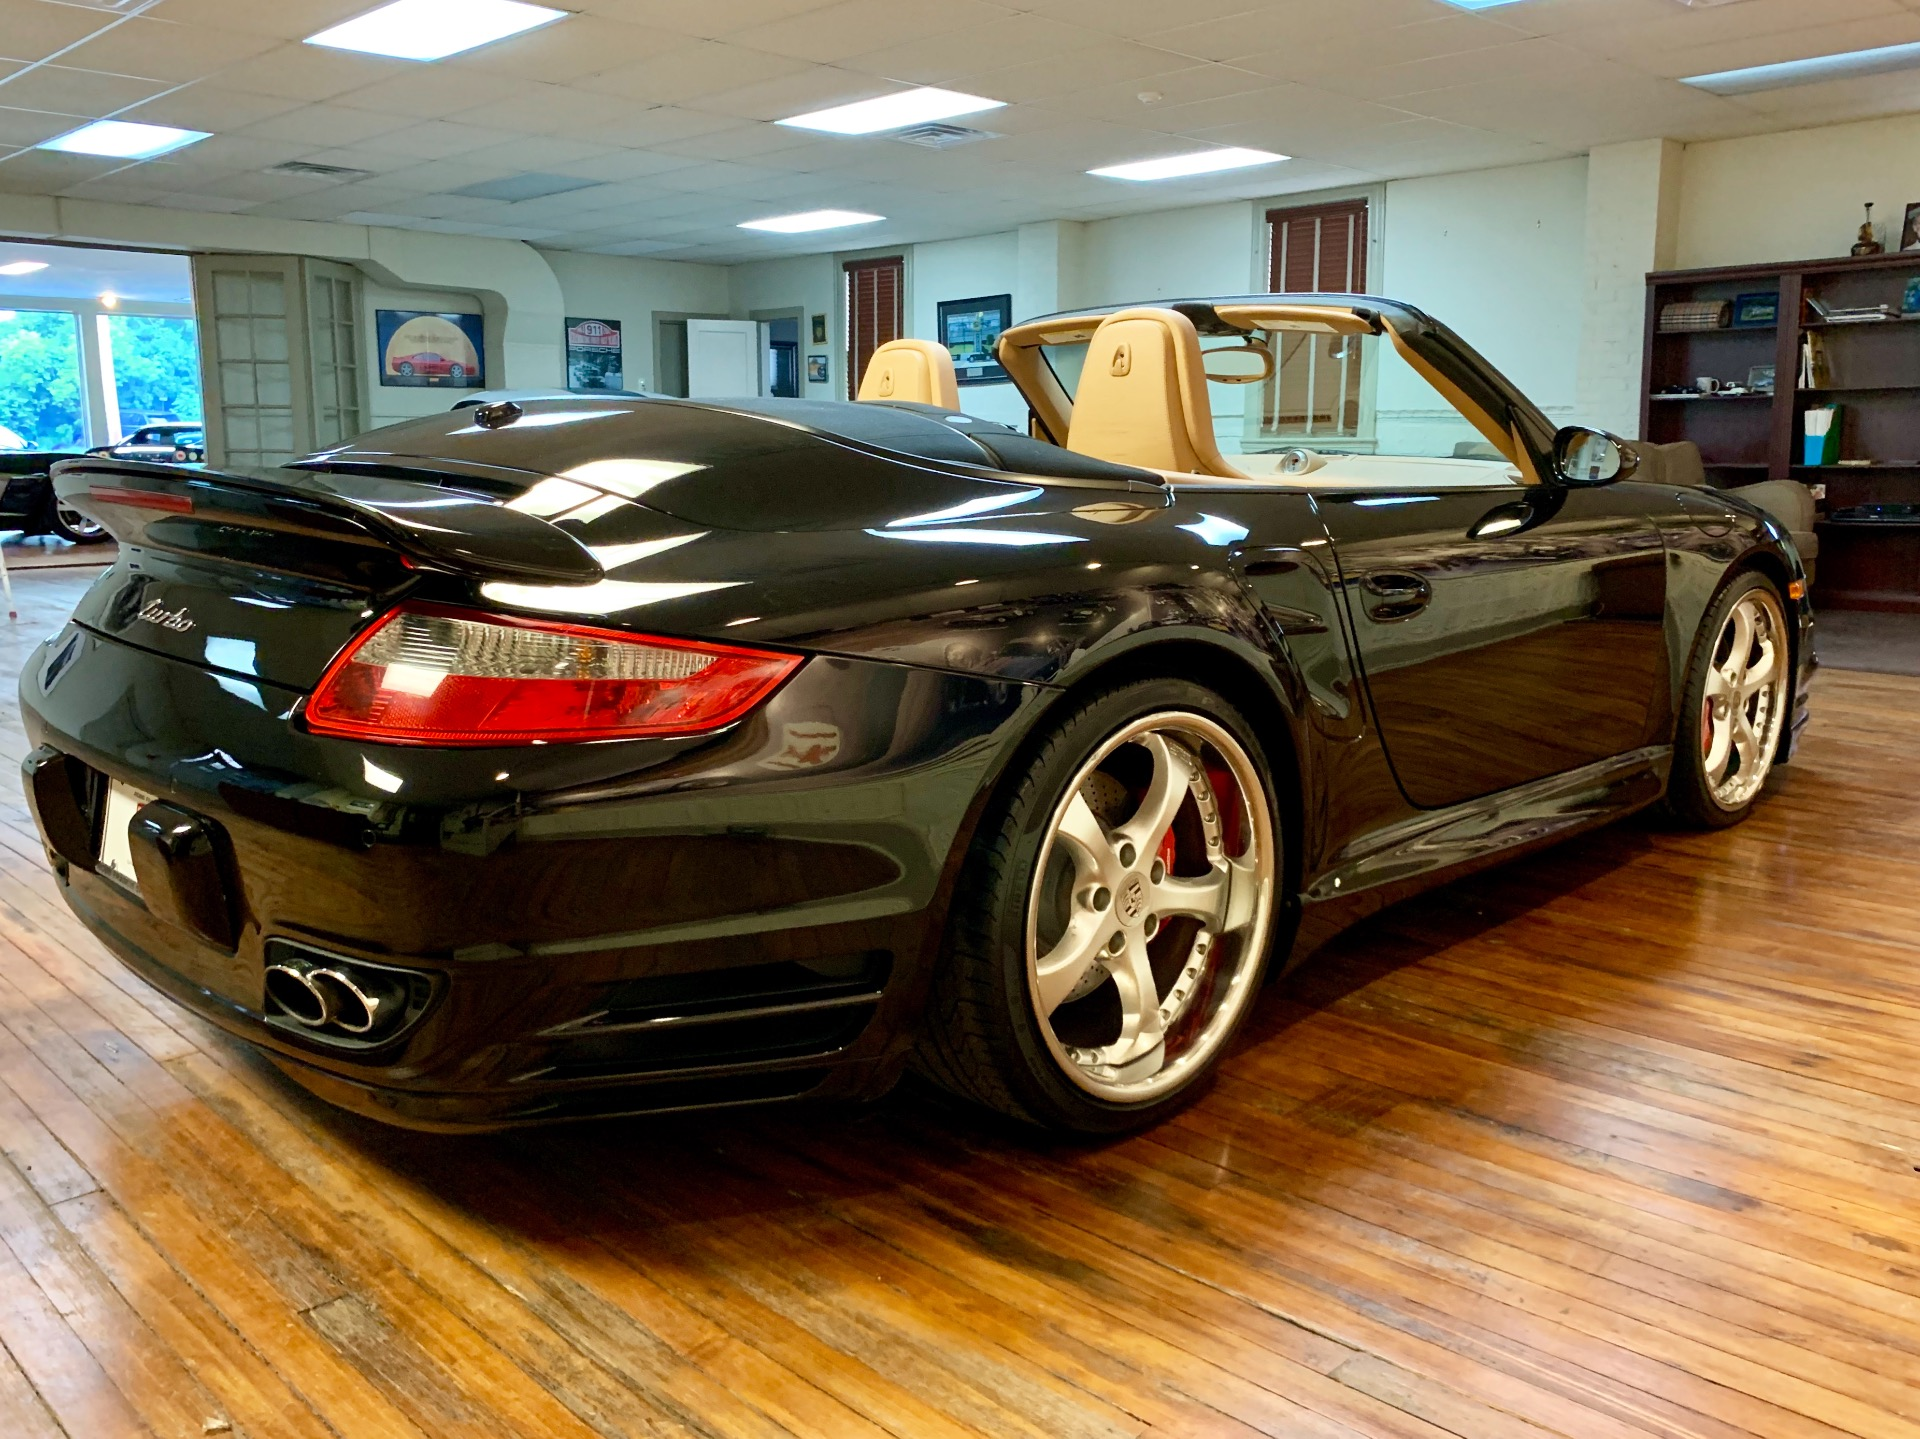 Used-2009-Porsche-911-Turbo-Cabriolet